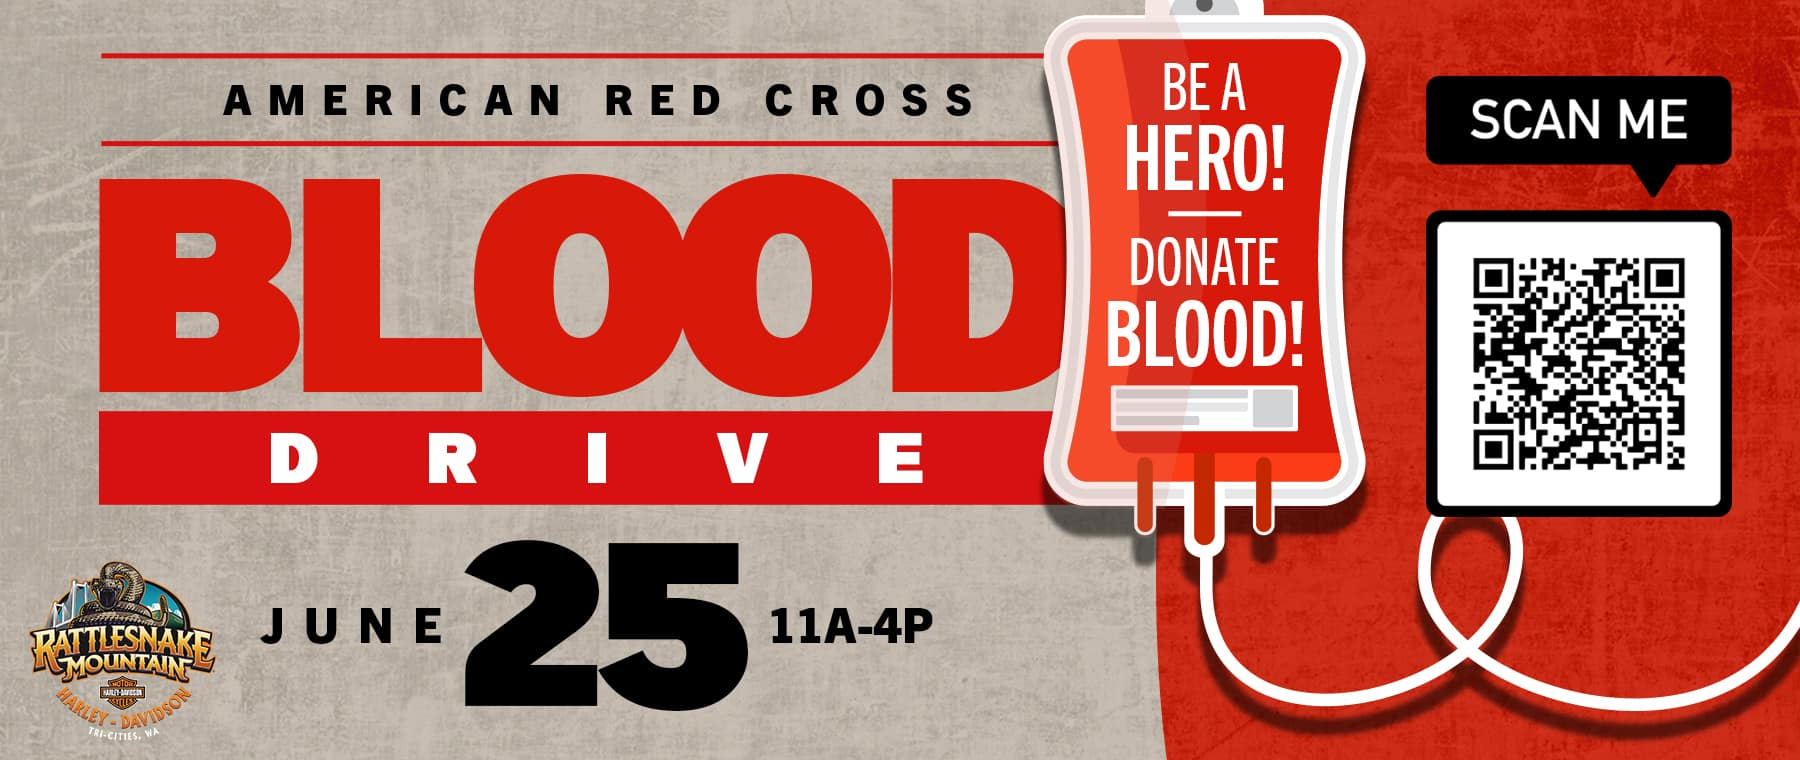 Be a hero! Donate blood!